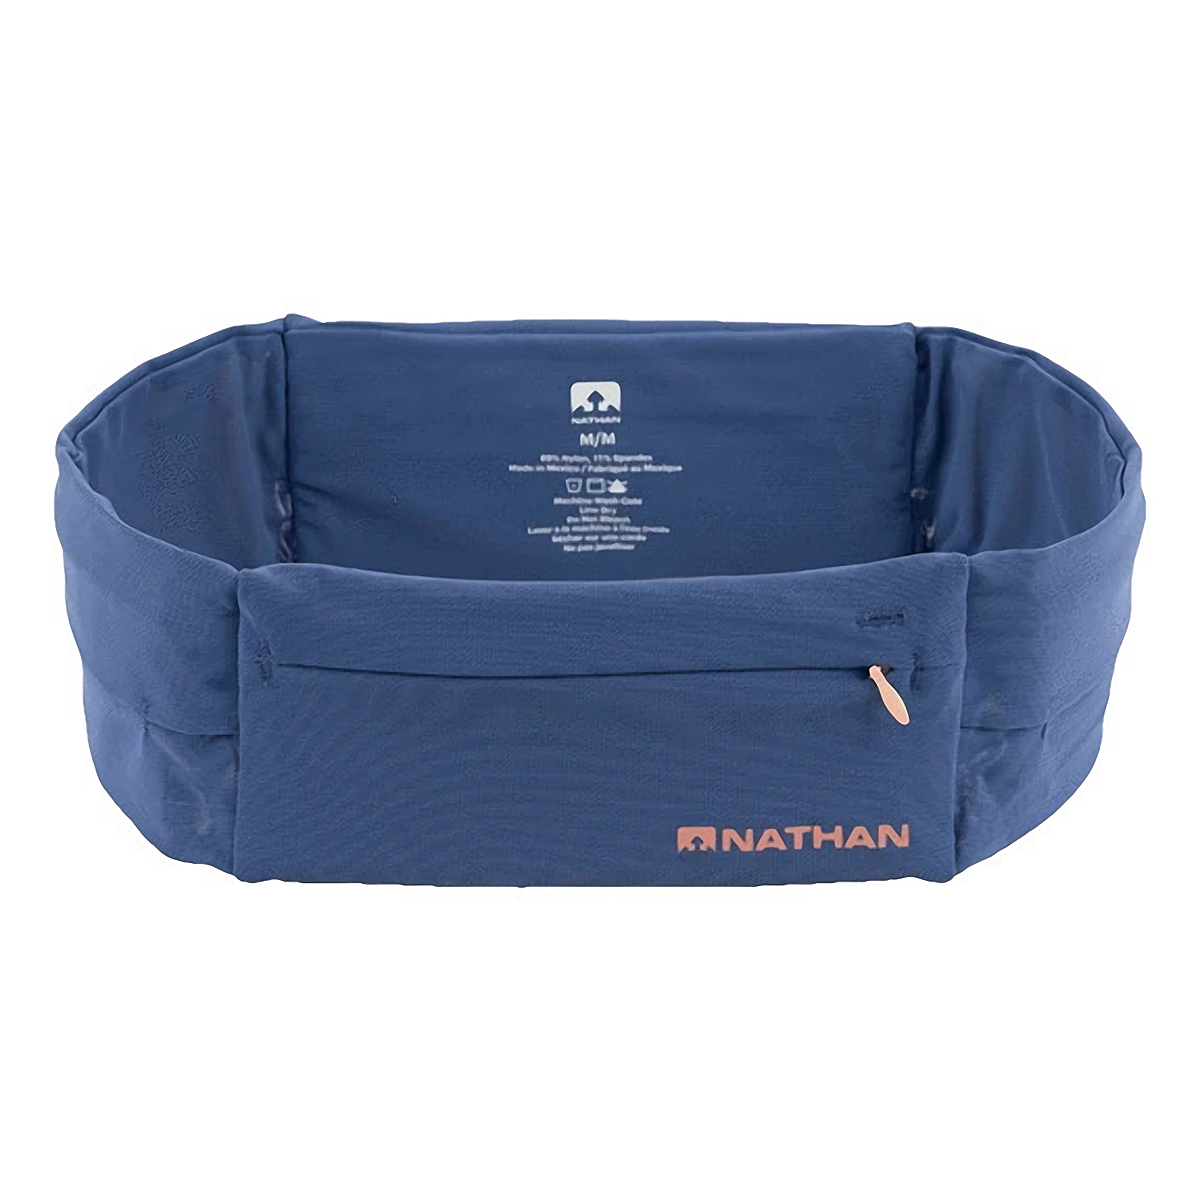 Nathan The Zipster Lite Training Waist Belt - Color: True Navy/Rose - Size: XS - Width:, True Navy/Rose, large, image 1